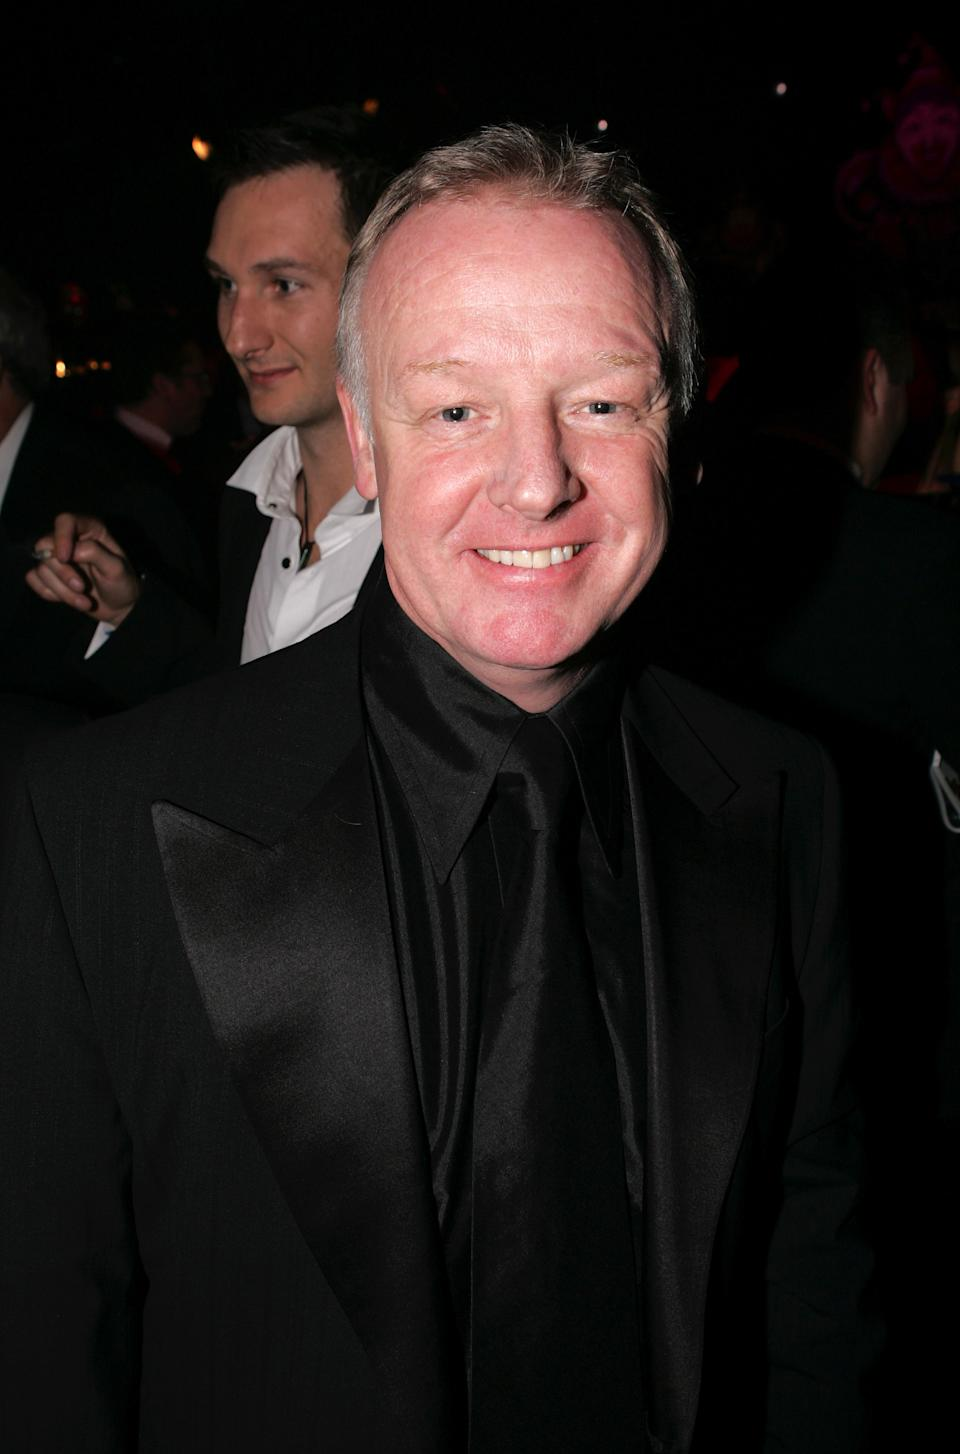 Les Dennis attends the aftershow party following the British Comedy Awards 2005 at London Television Studios on December 14, 2005 in London, England. (Photo by Dave Hogan/Getty Images)